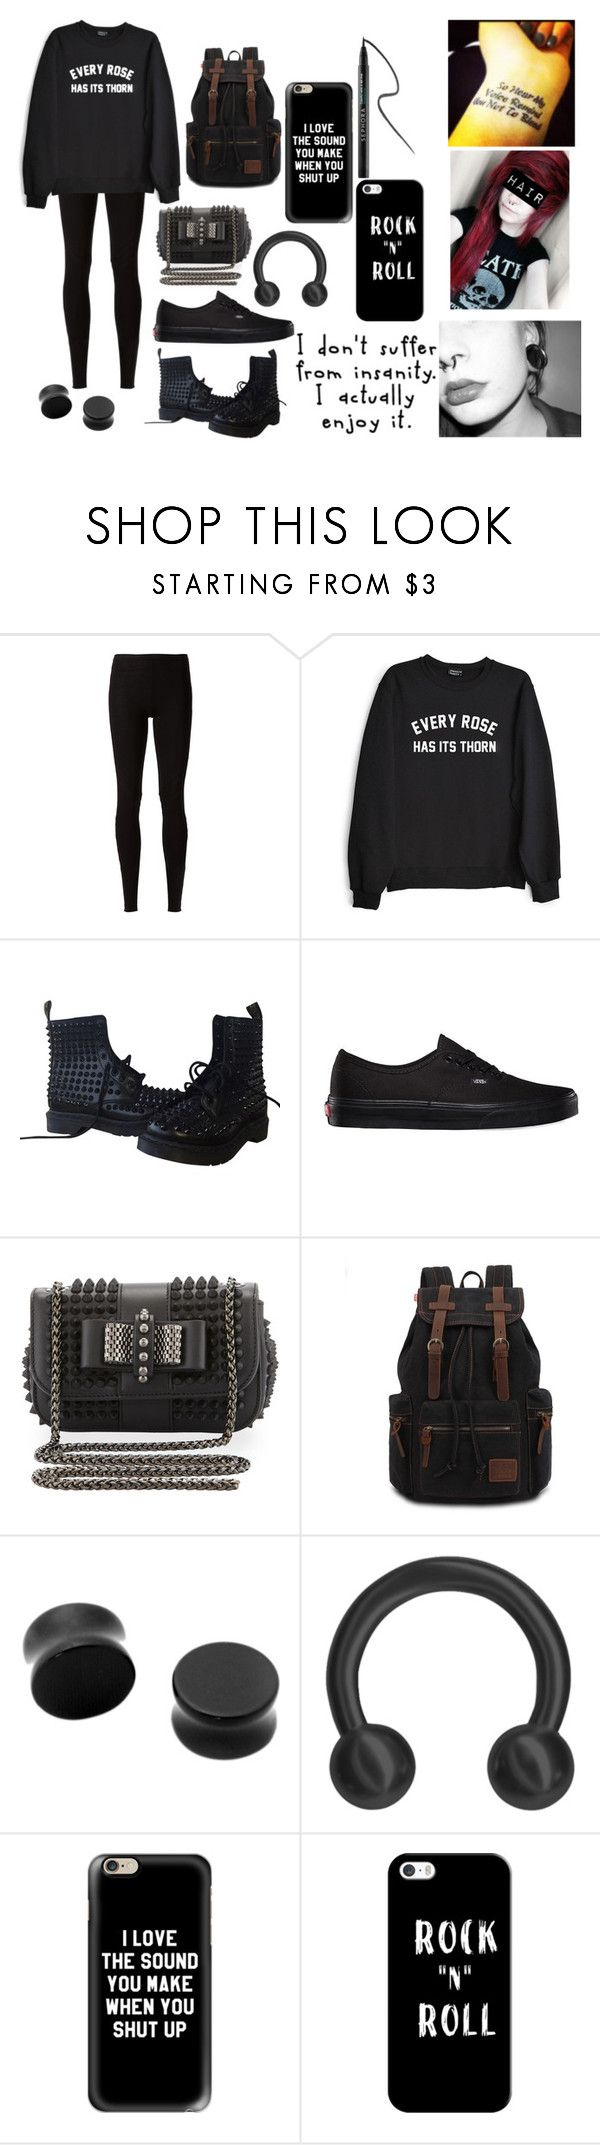 """Every Rose Has It's Thorn"" by abipatterson ❤ liked on Polyvore featuring Rick Owens Lilies, Private Party, Dr. Martens, Vans, Christian Louboutin, Hot Topic, Casetify, Sephora Collection and Albino"